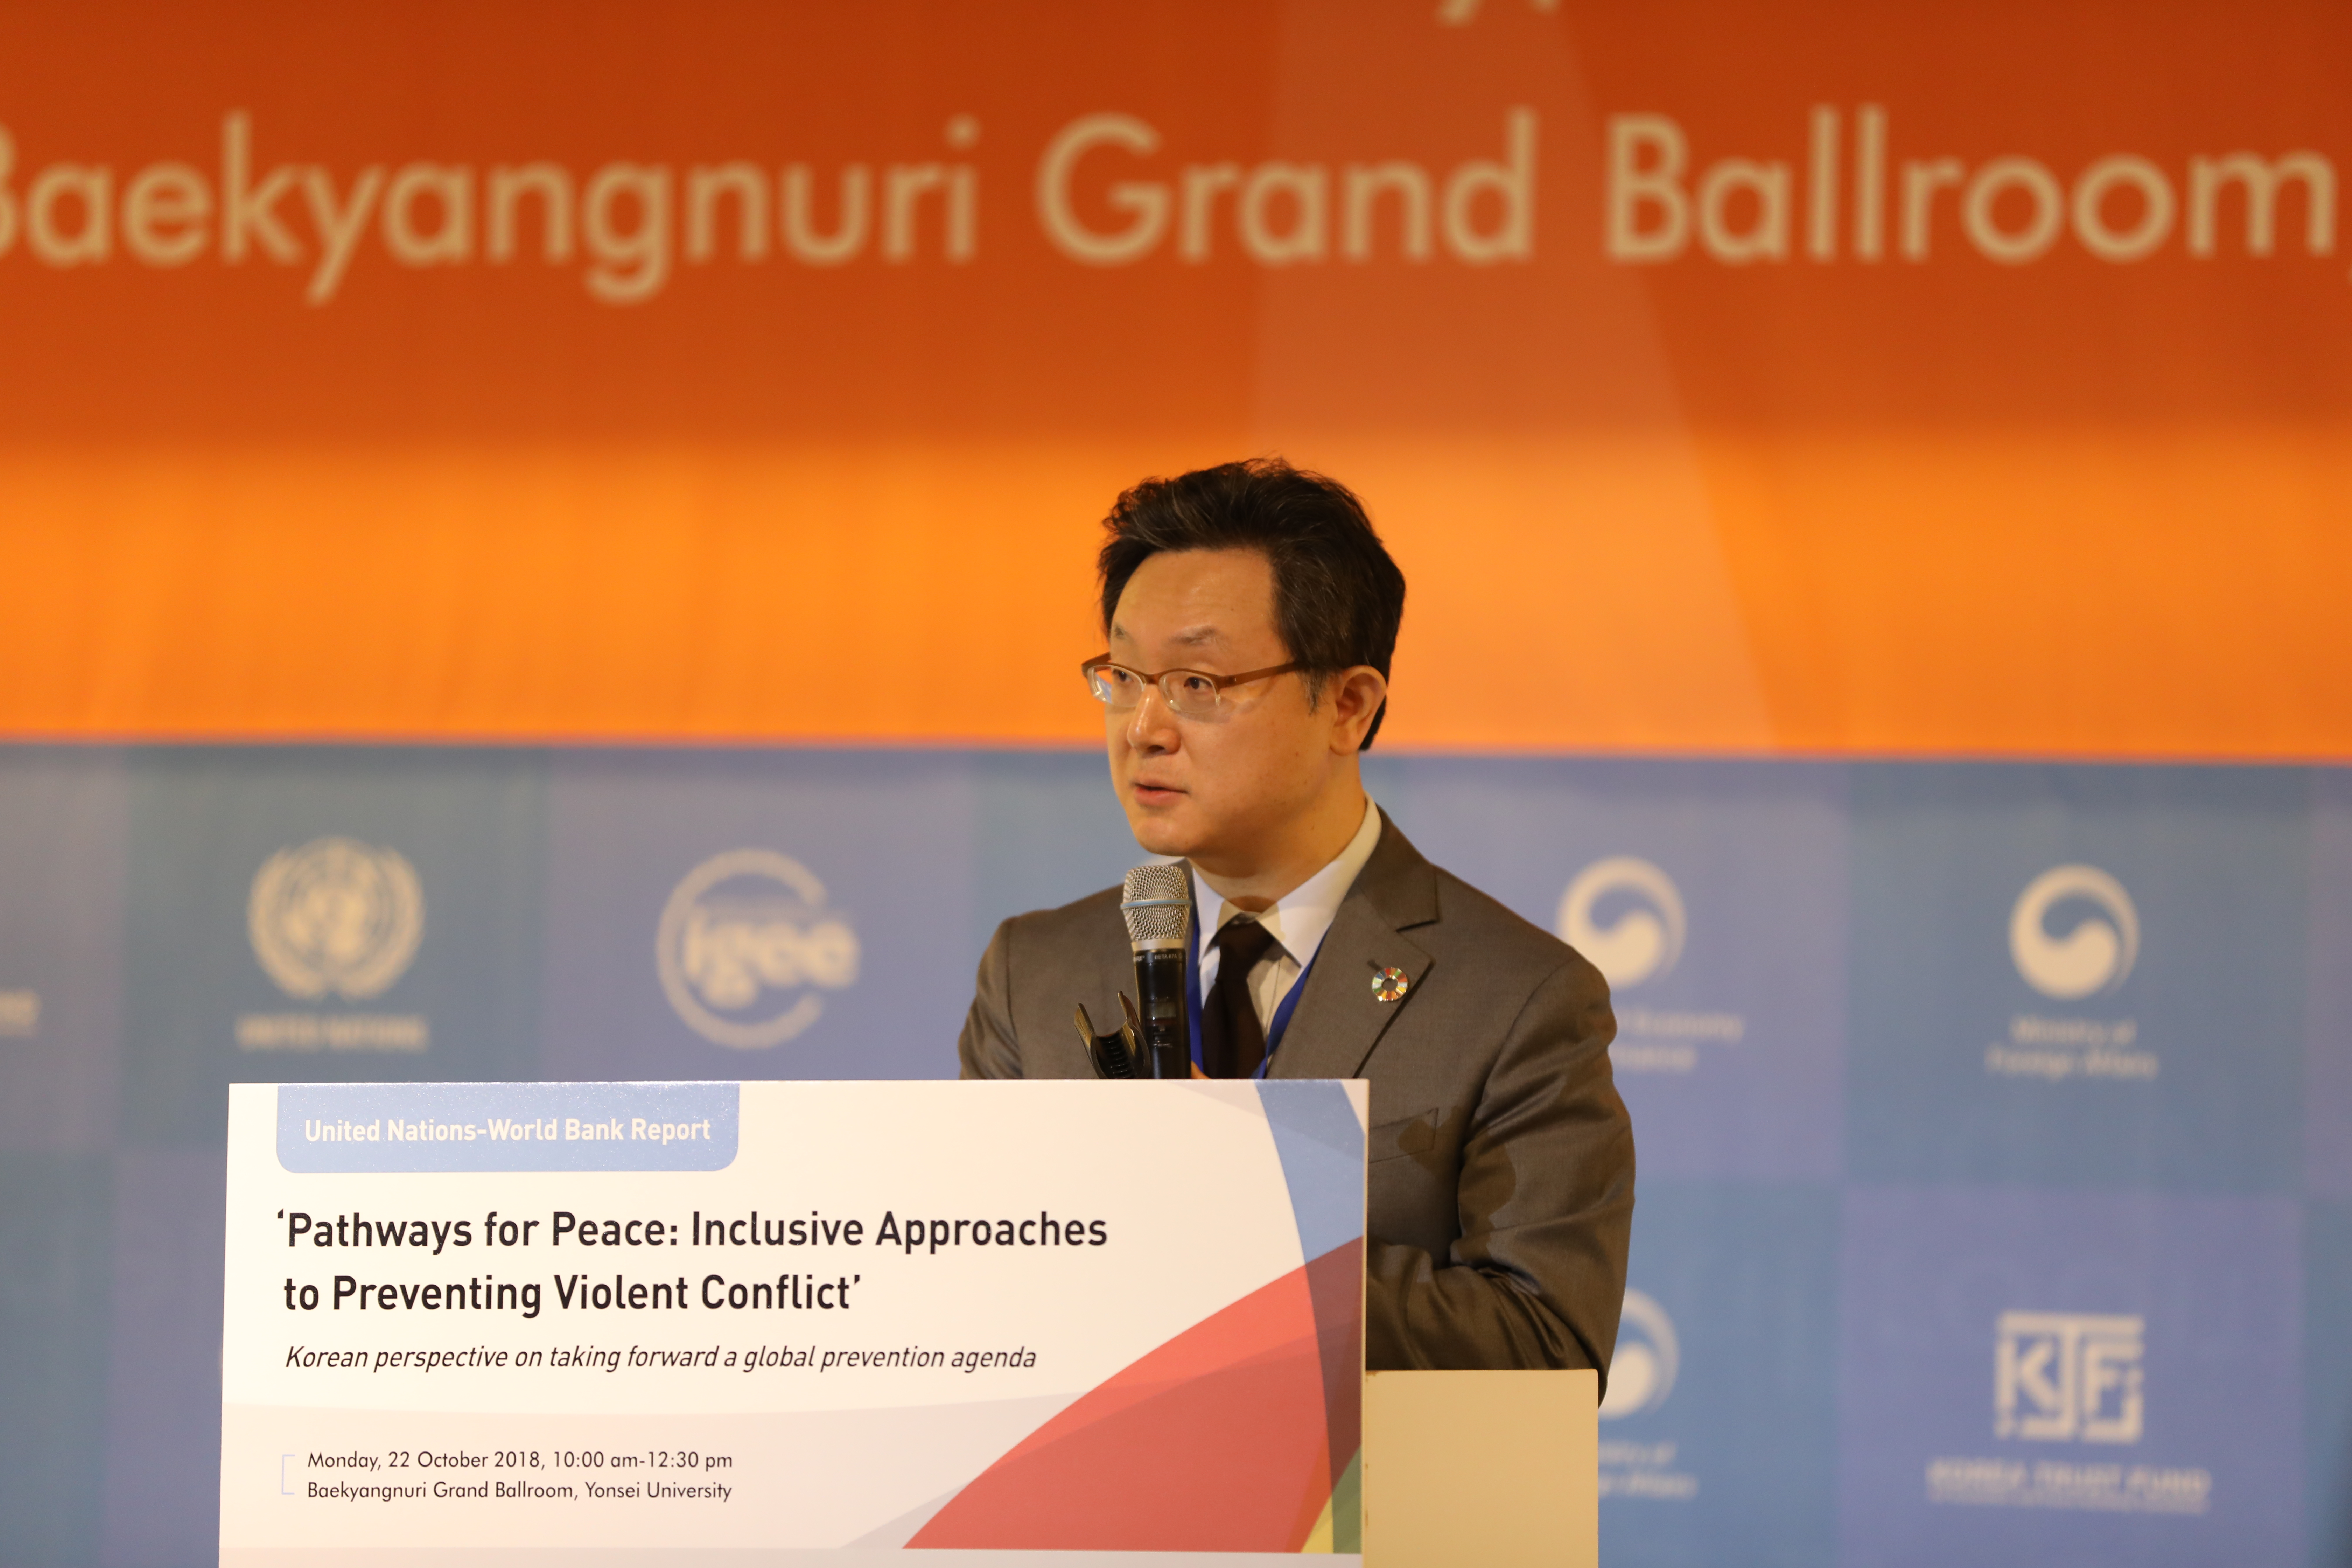 UN-World Bank Report Launched at Yonsei University in Seoul